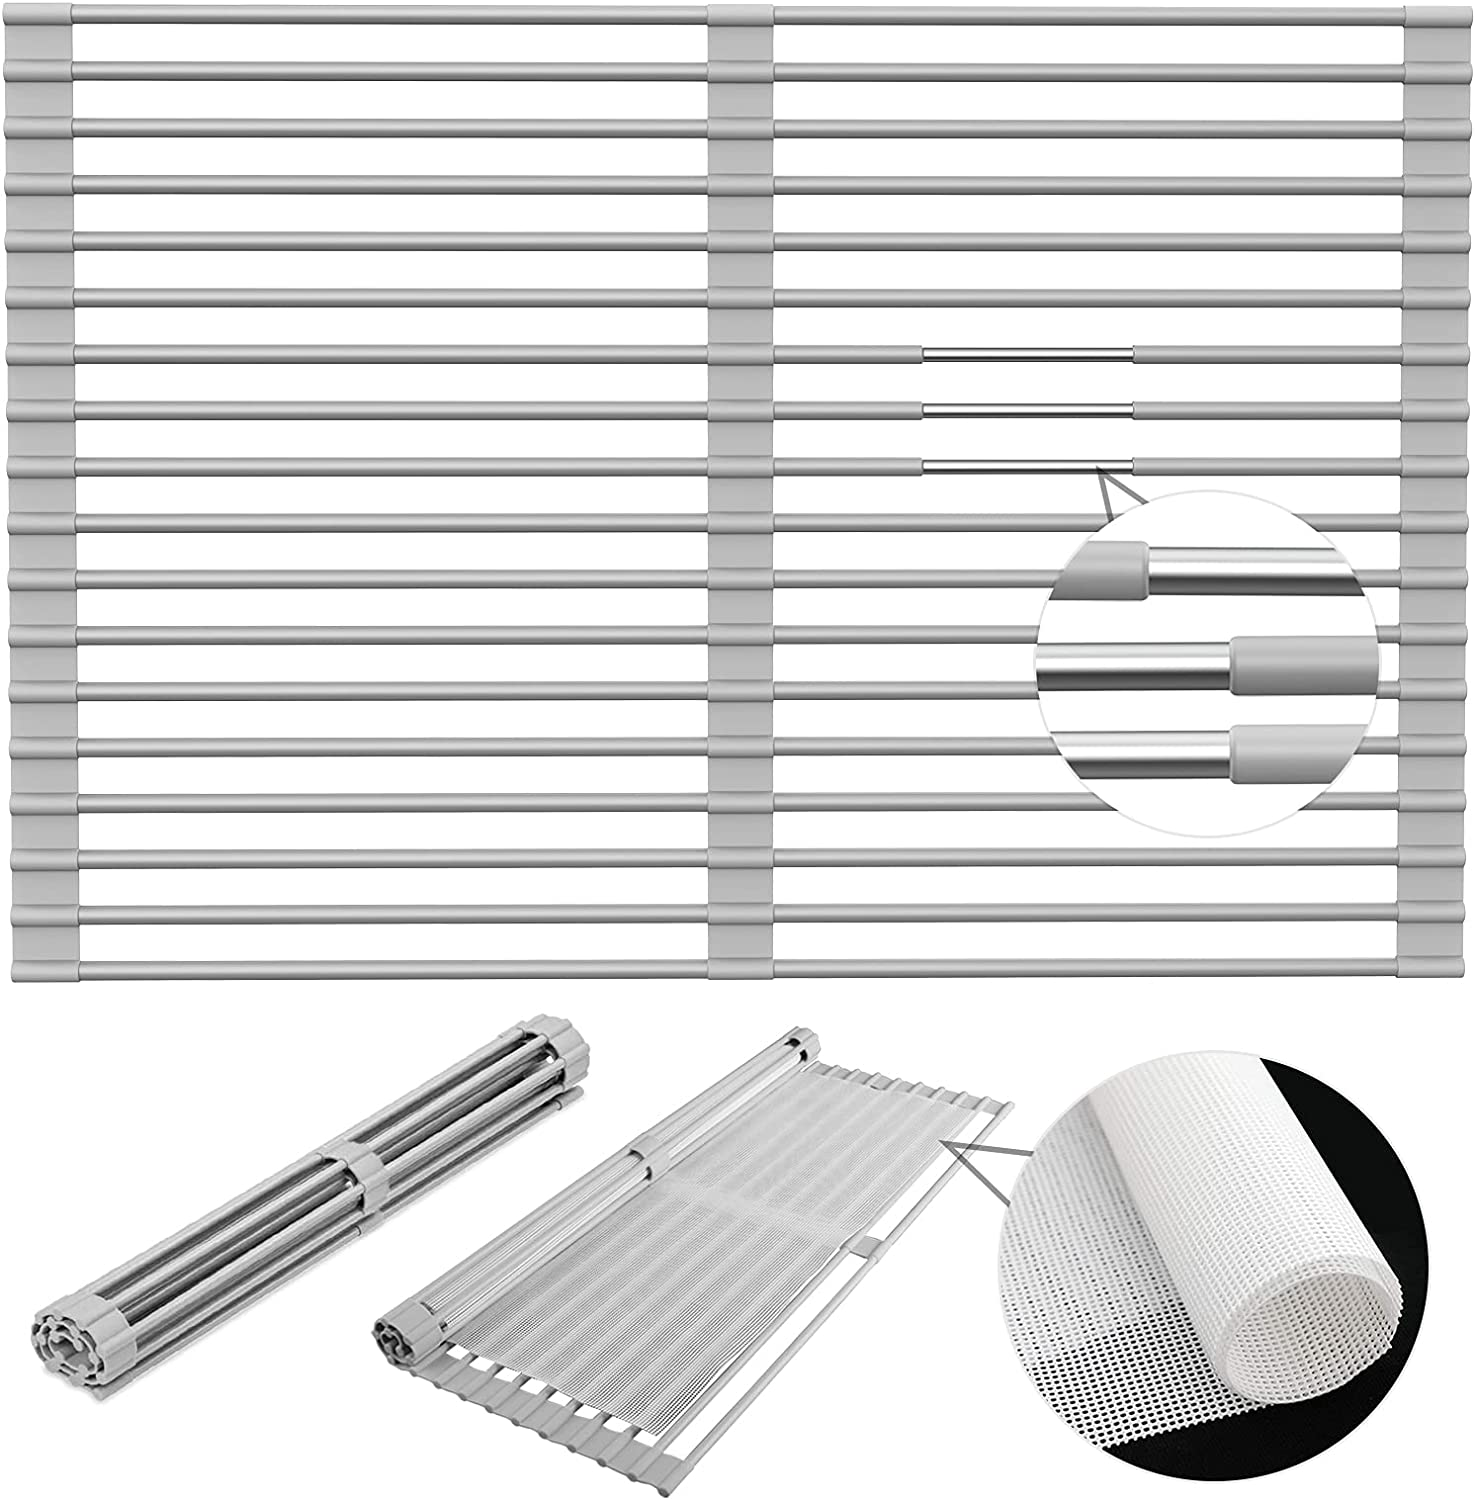 Rapid rise 【2021 NEWEST】Dish Drying Rack Extra Large 70% OFF Outlet 20.5''X13.8